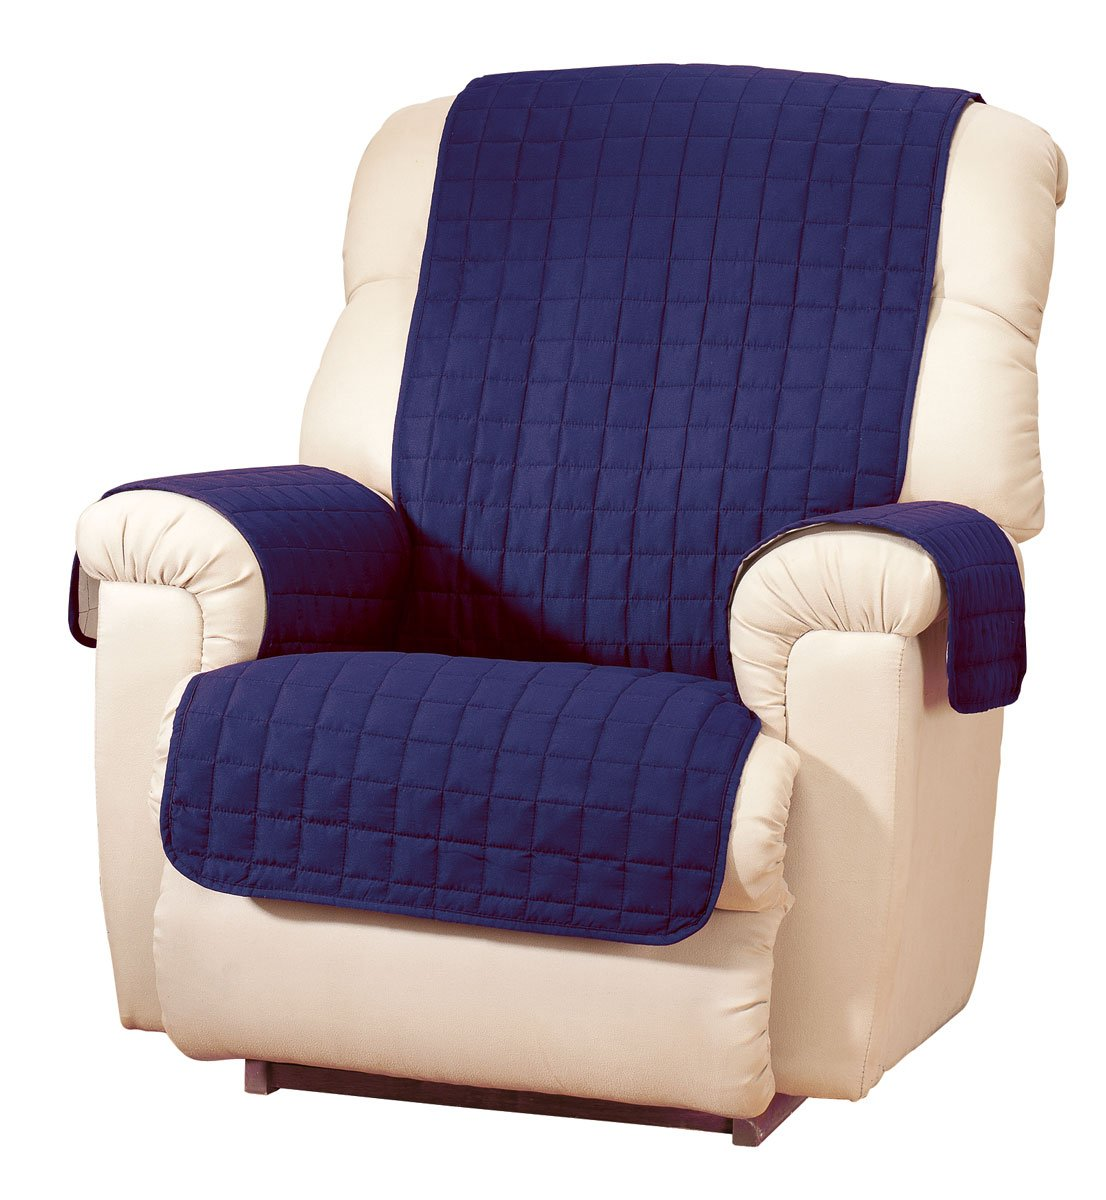 Amazon.com: Microfiber Recliner Protector By OakRidge ComfortsTM: Home U0026  Kitchen